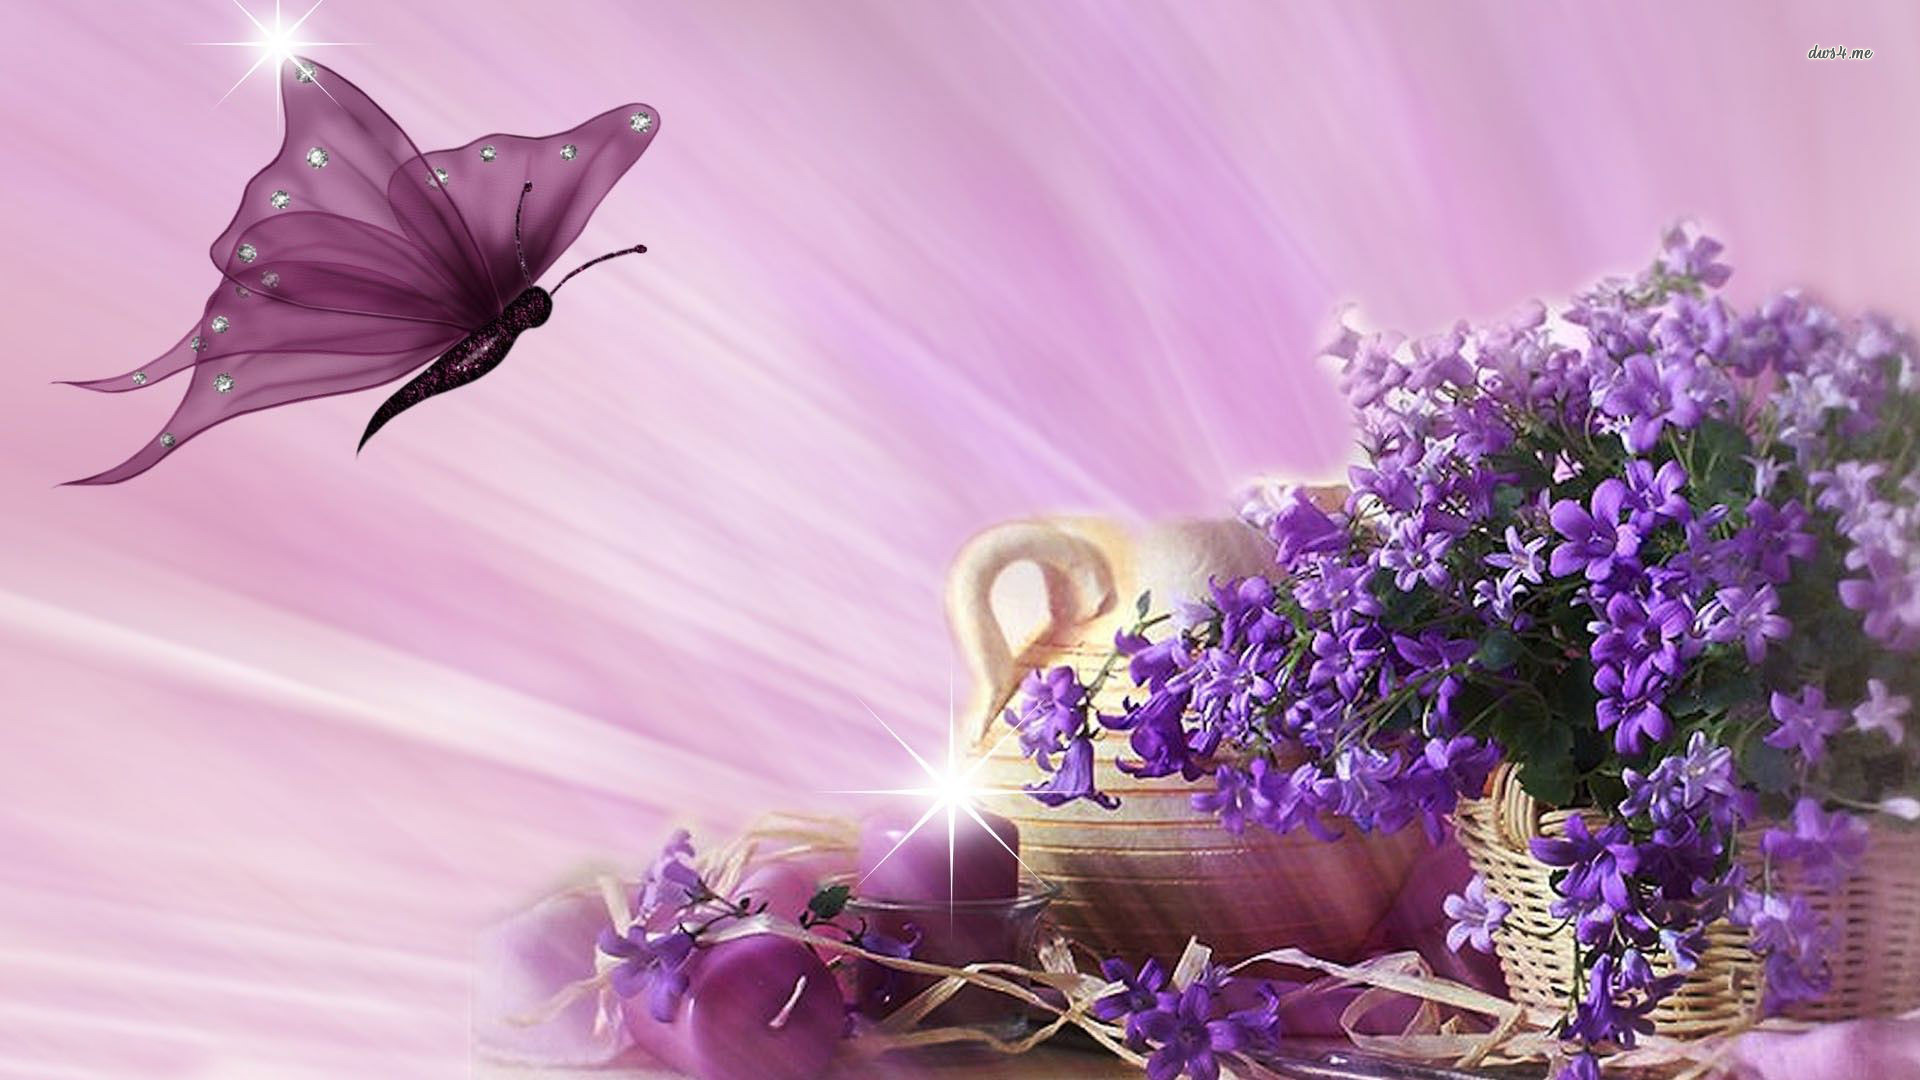 Lilacs and purple butterfly image id 11515 image abyss for Lilac butterfly wallpaper